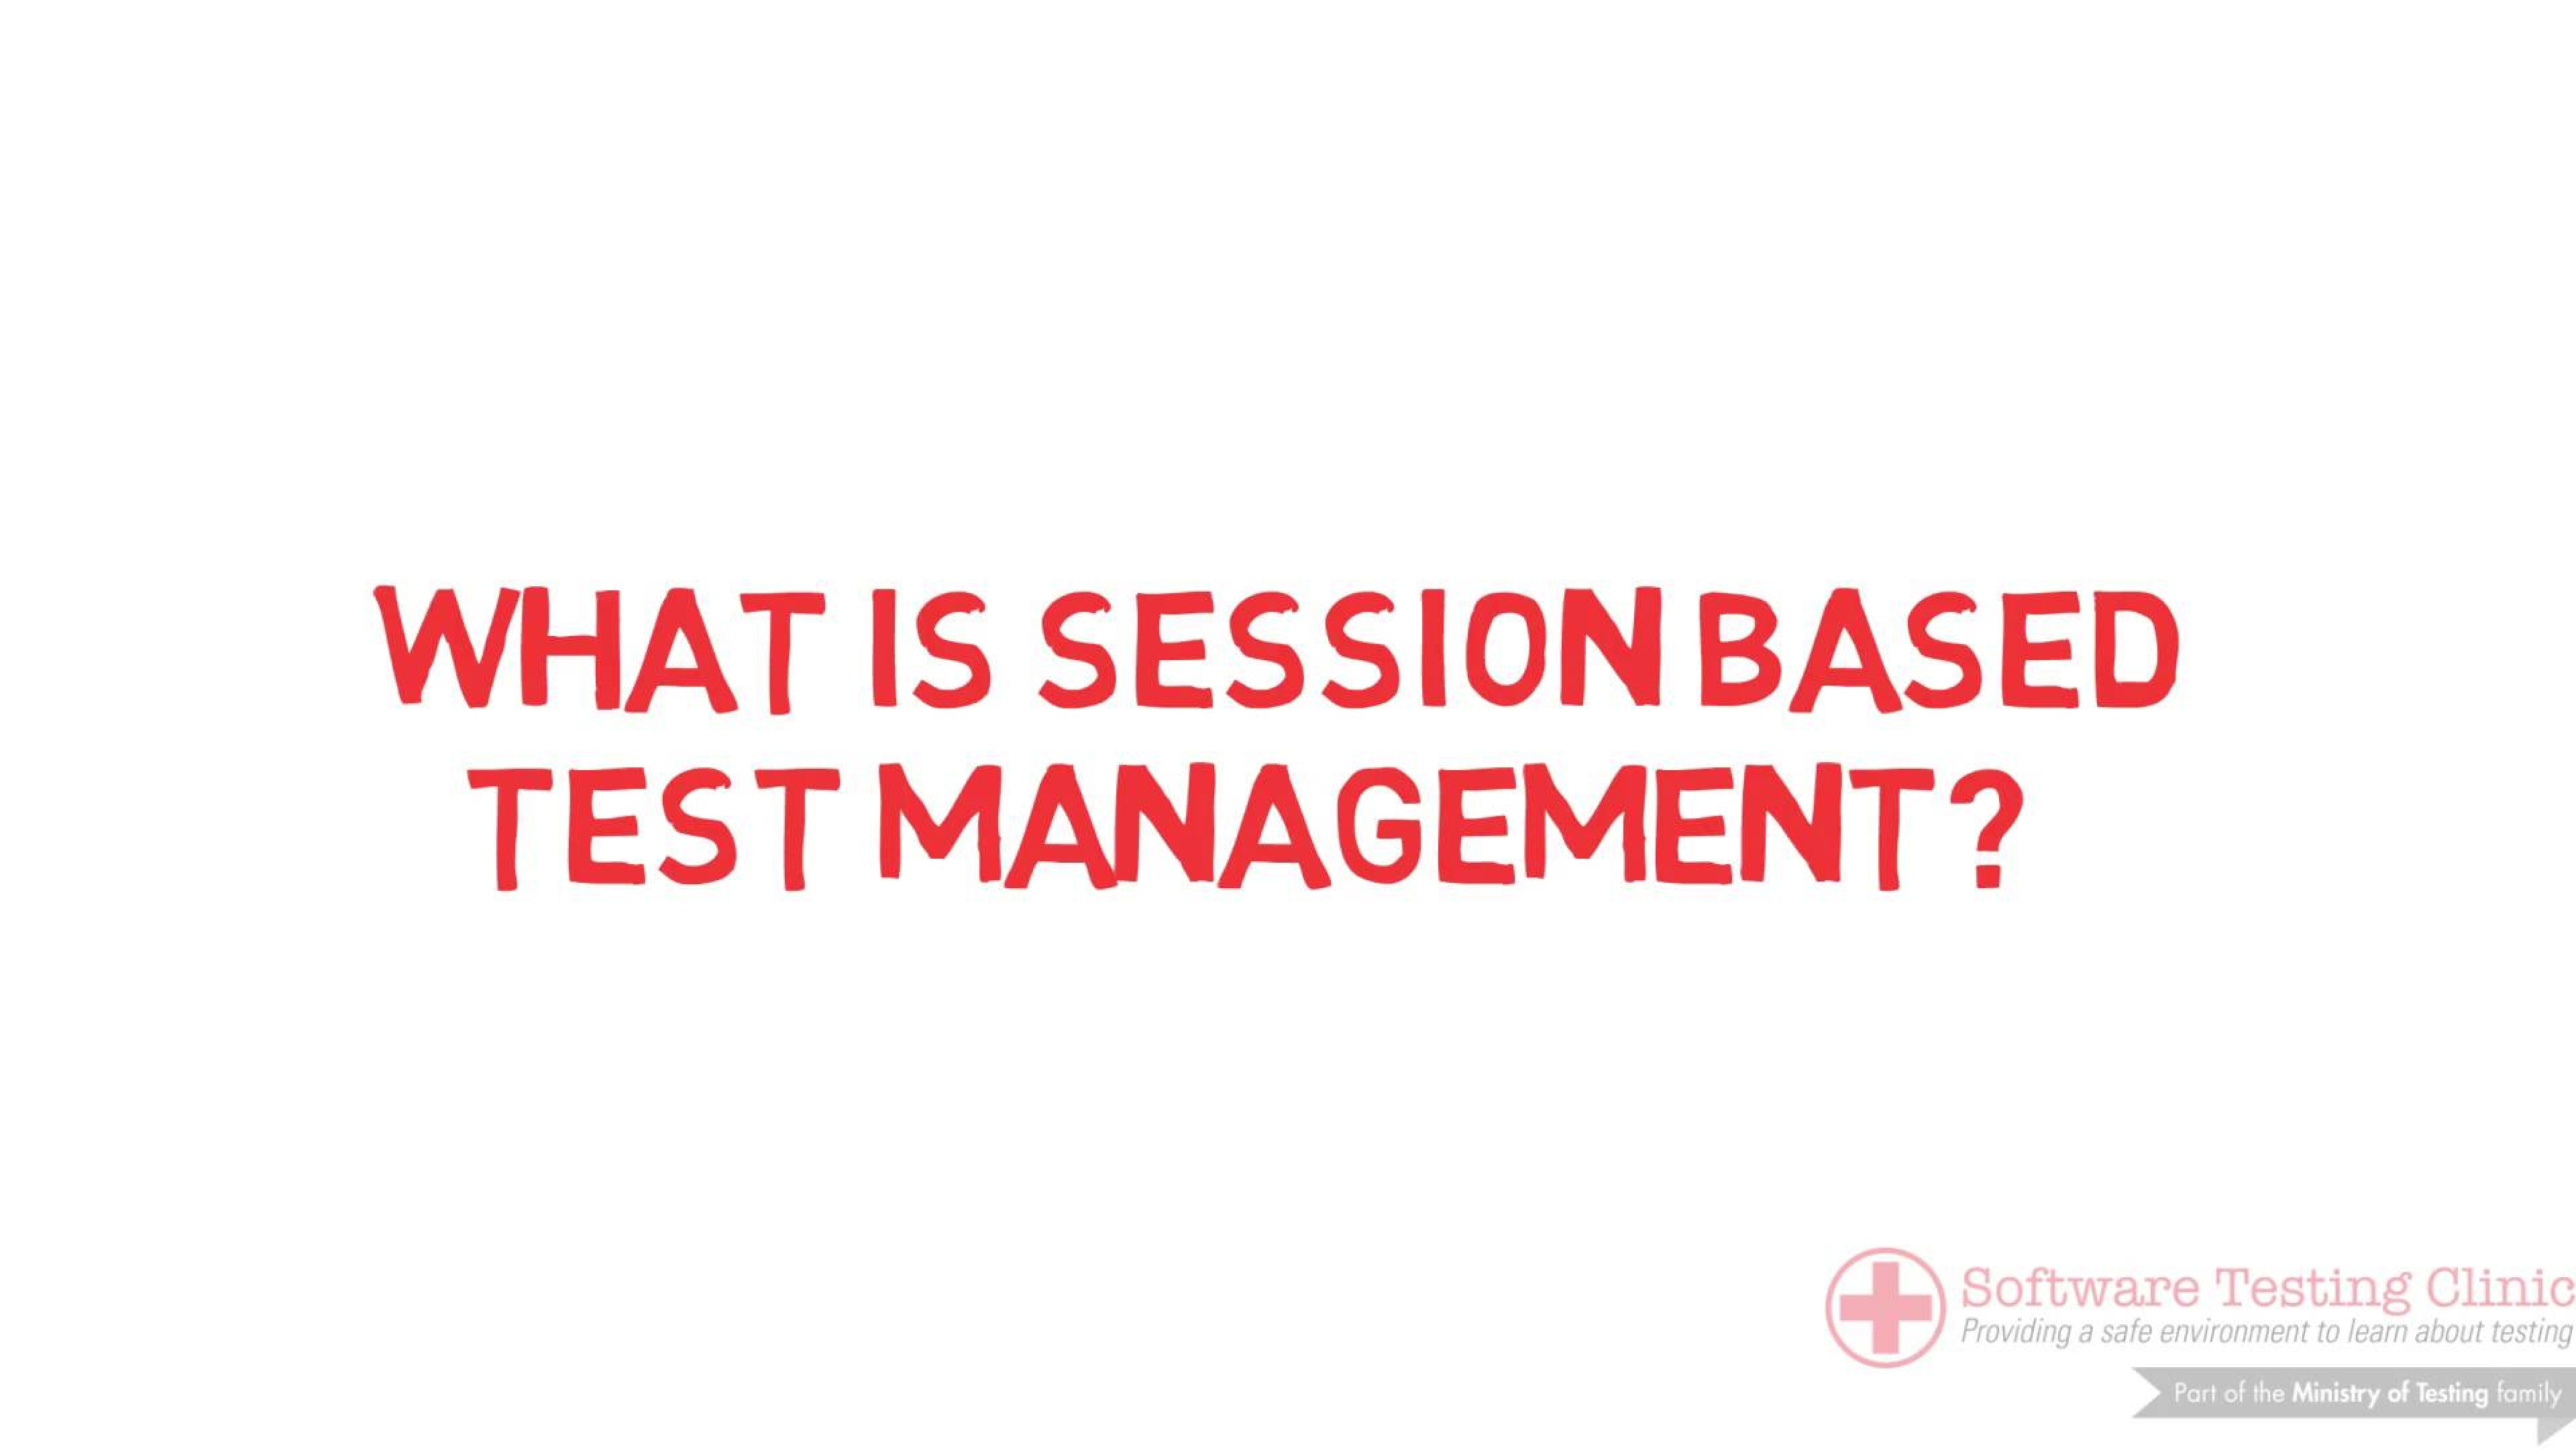 99 Second Introduction to Session Based Test Management